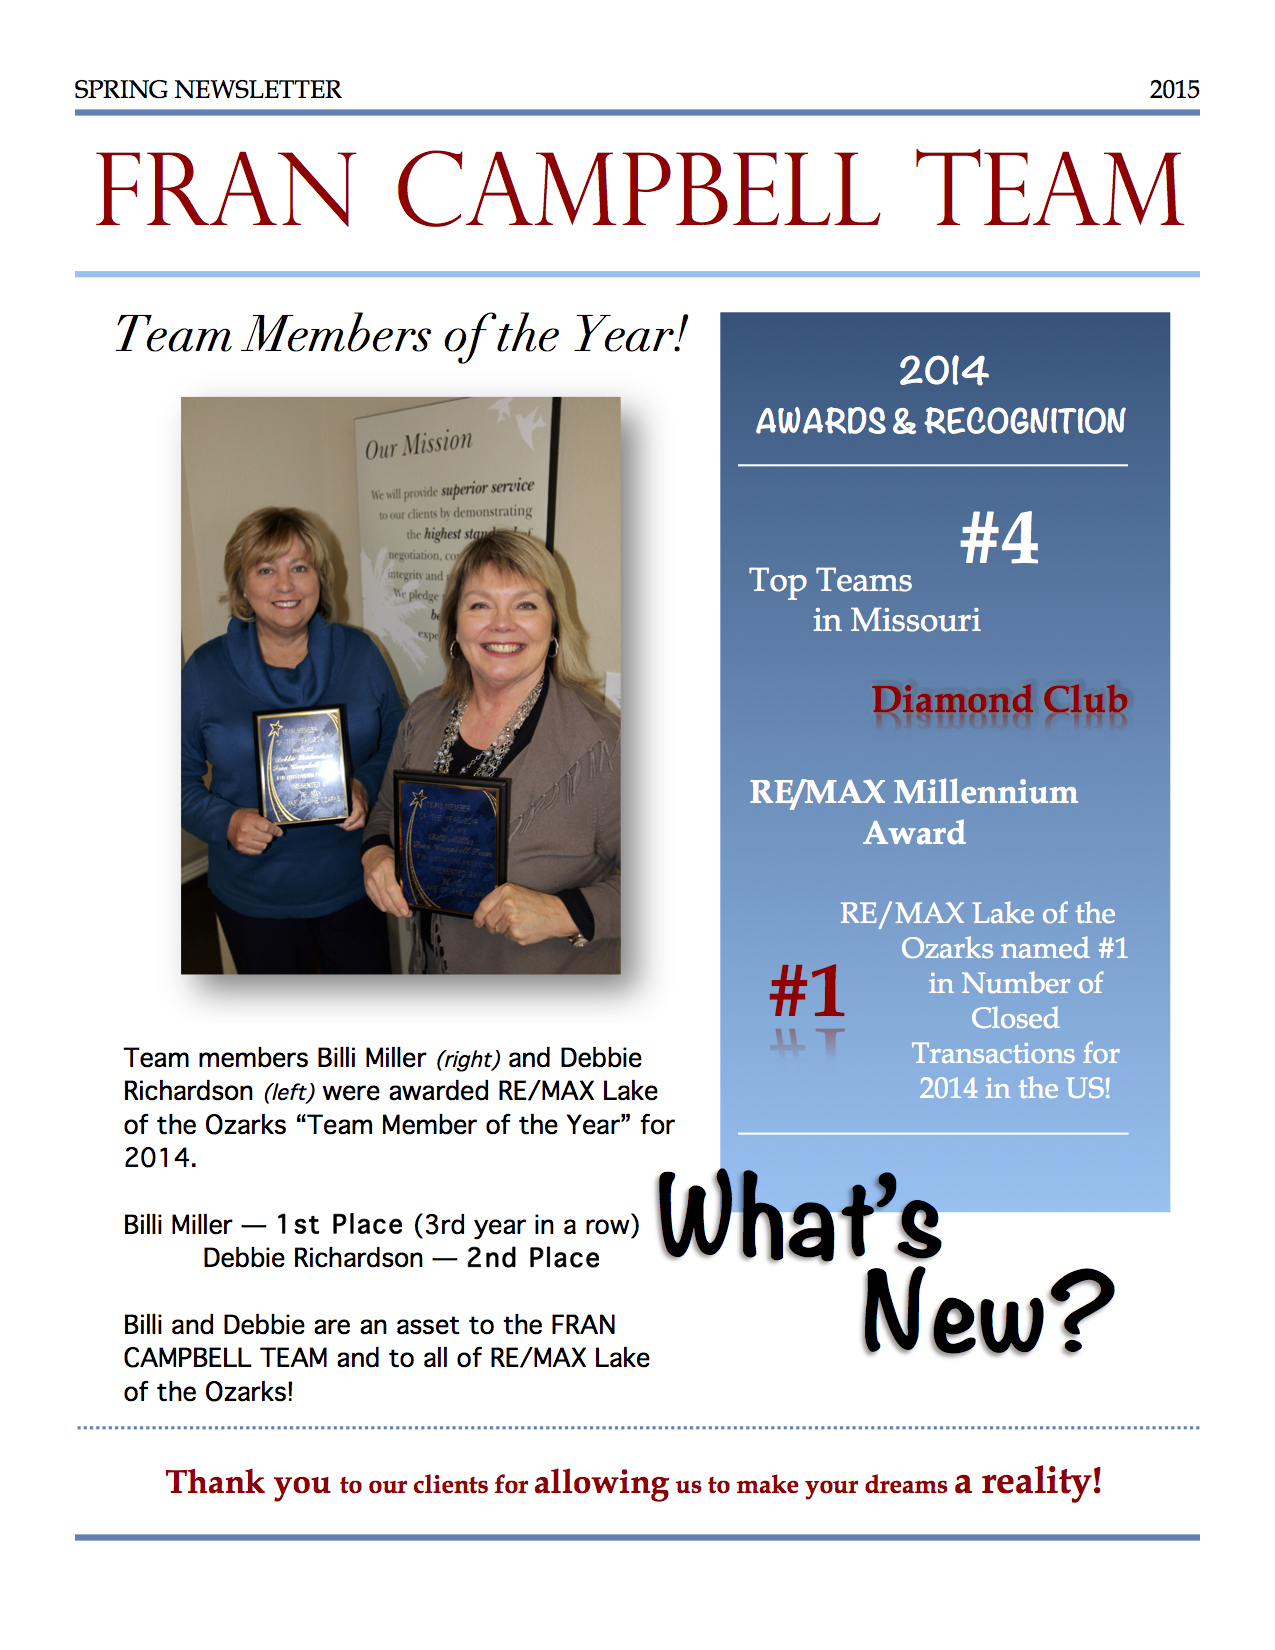 FCT 2015 Spring Newsletter